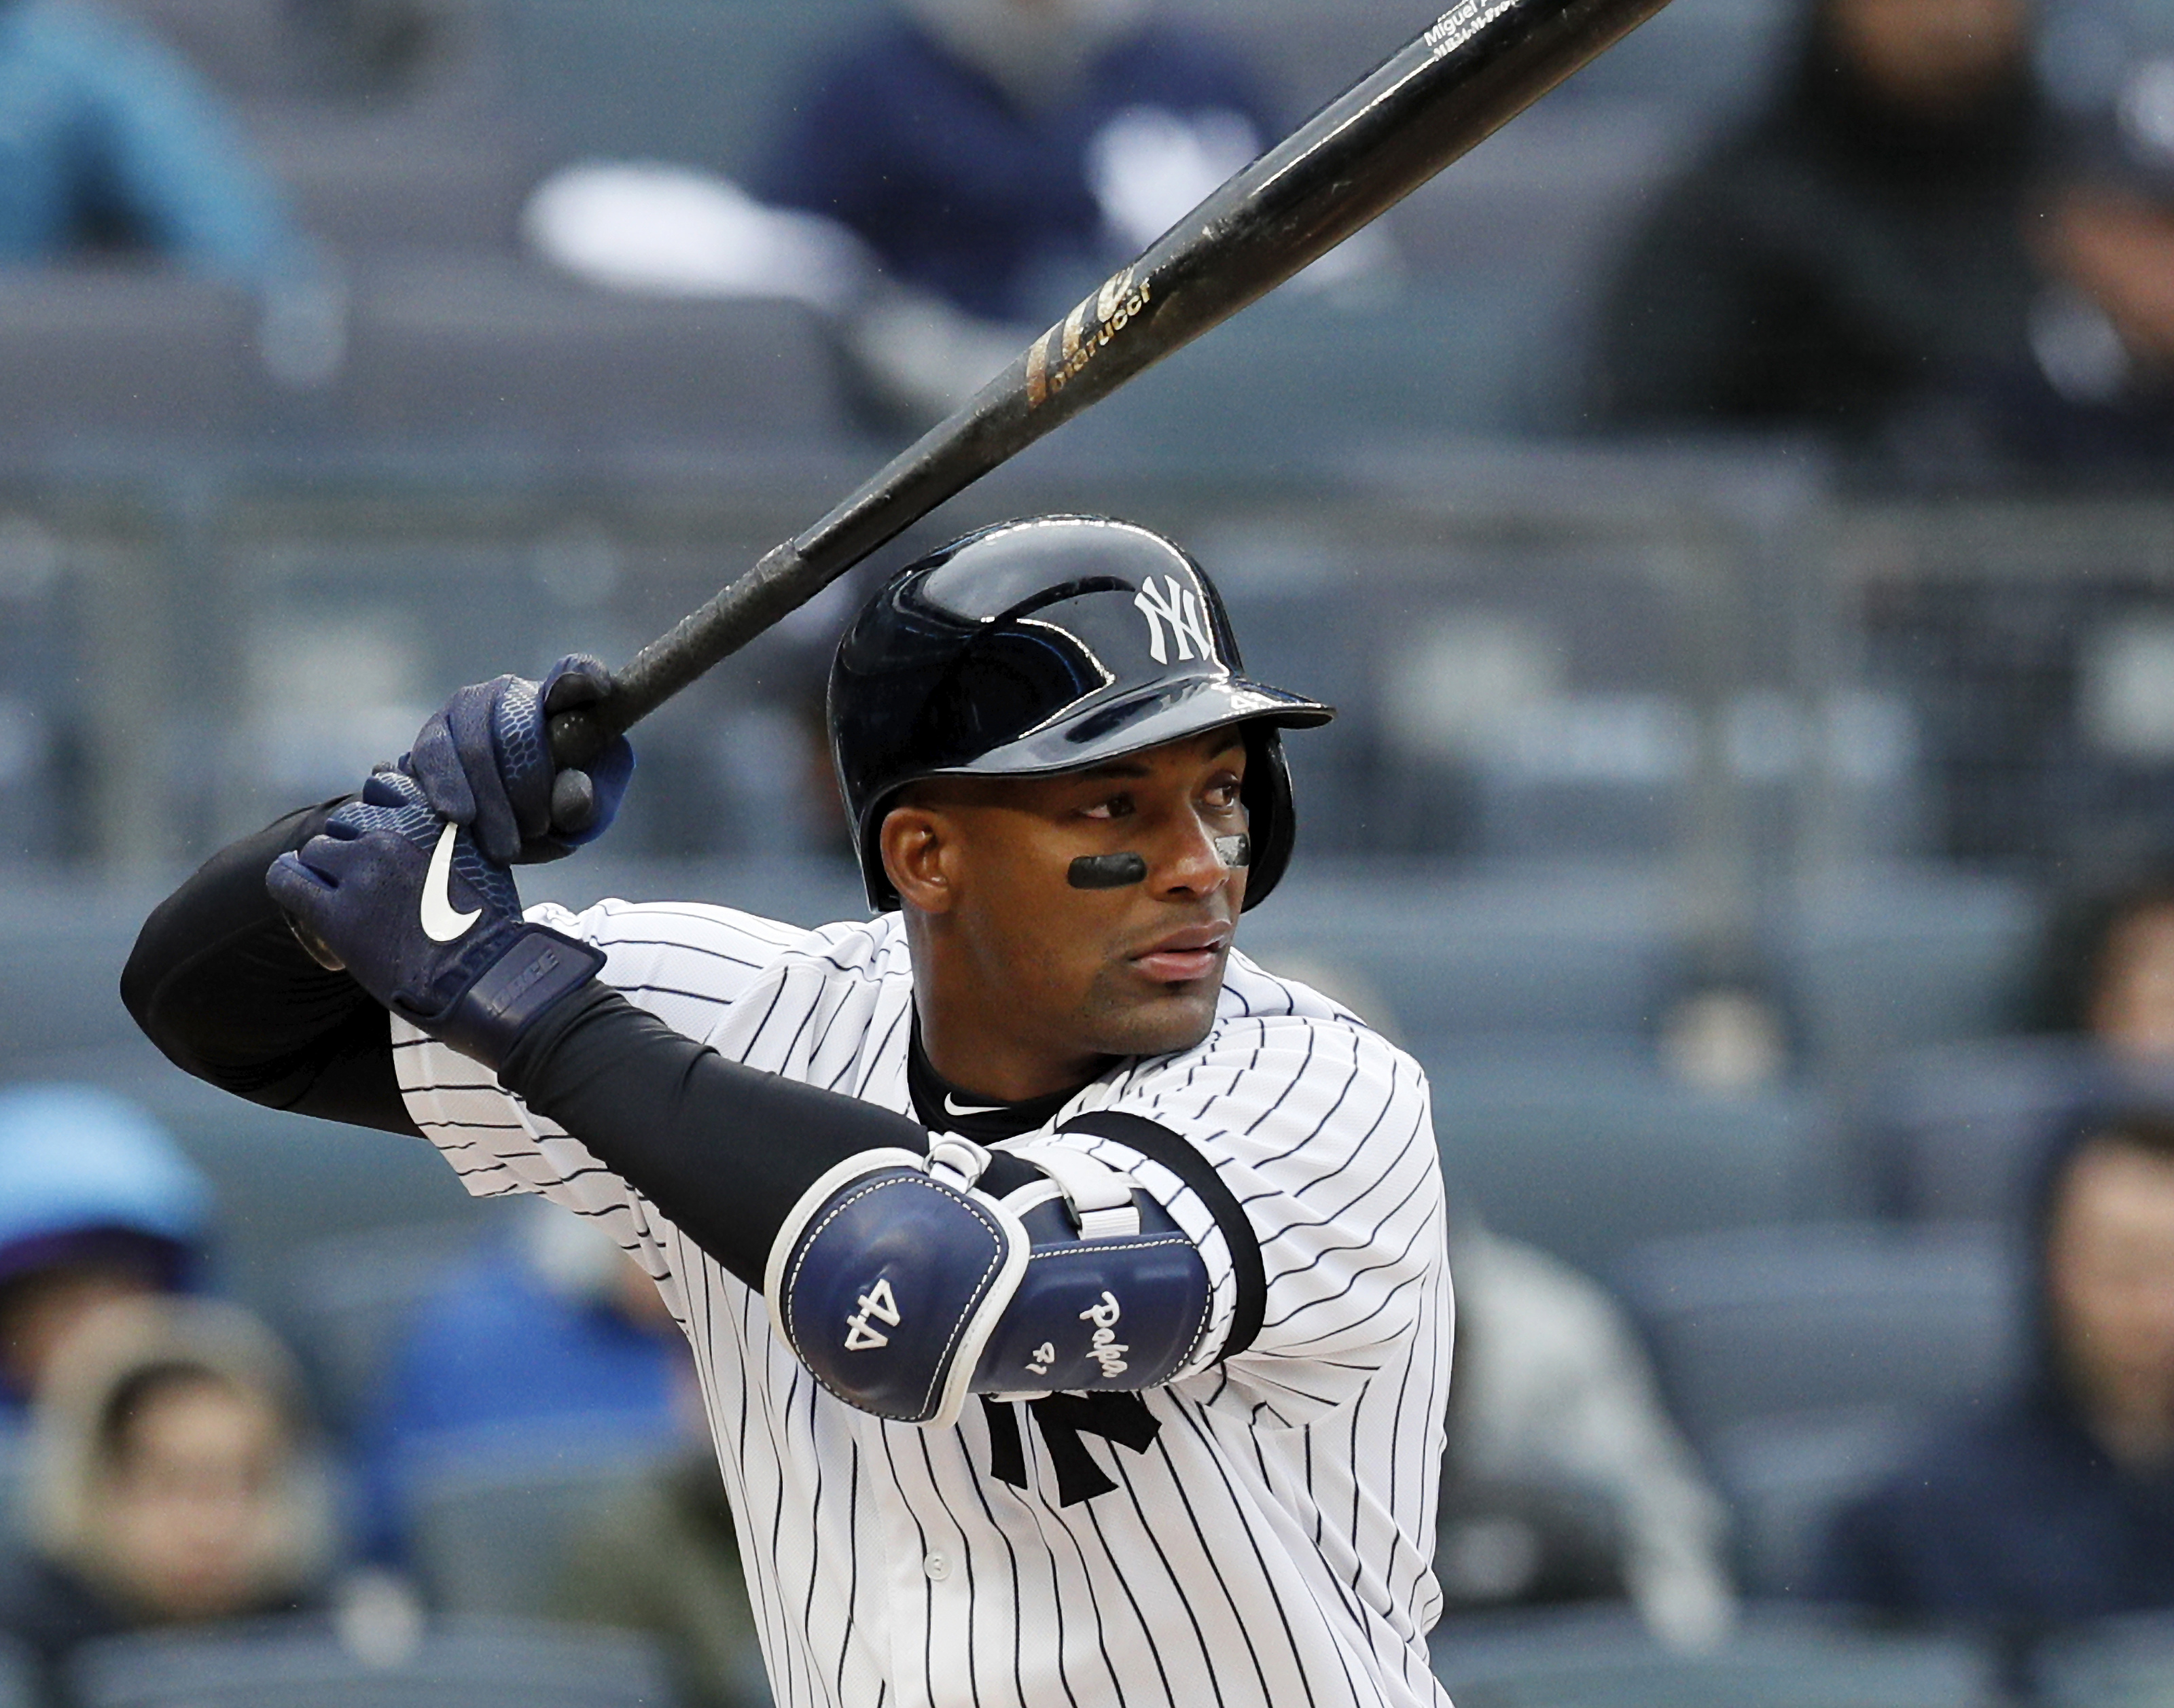 Yankees: Miguel Andujar could keep Clint Frazier off 26-man roster